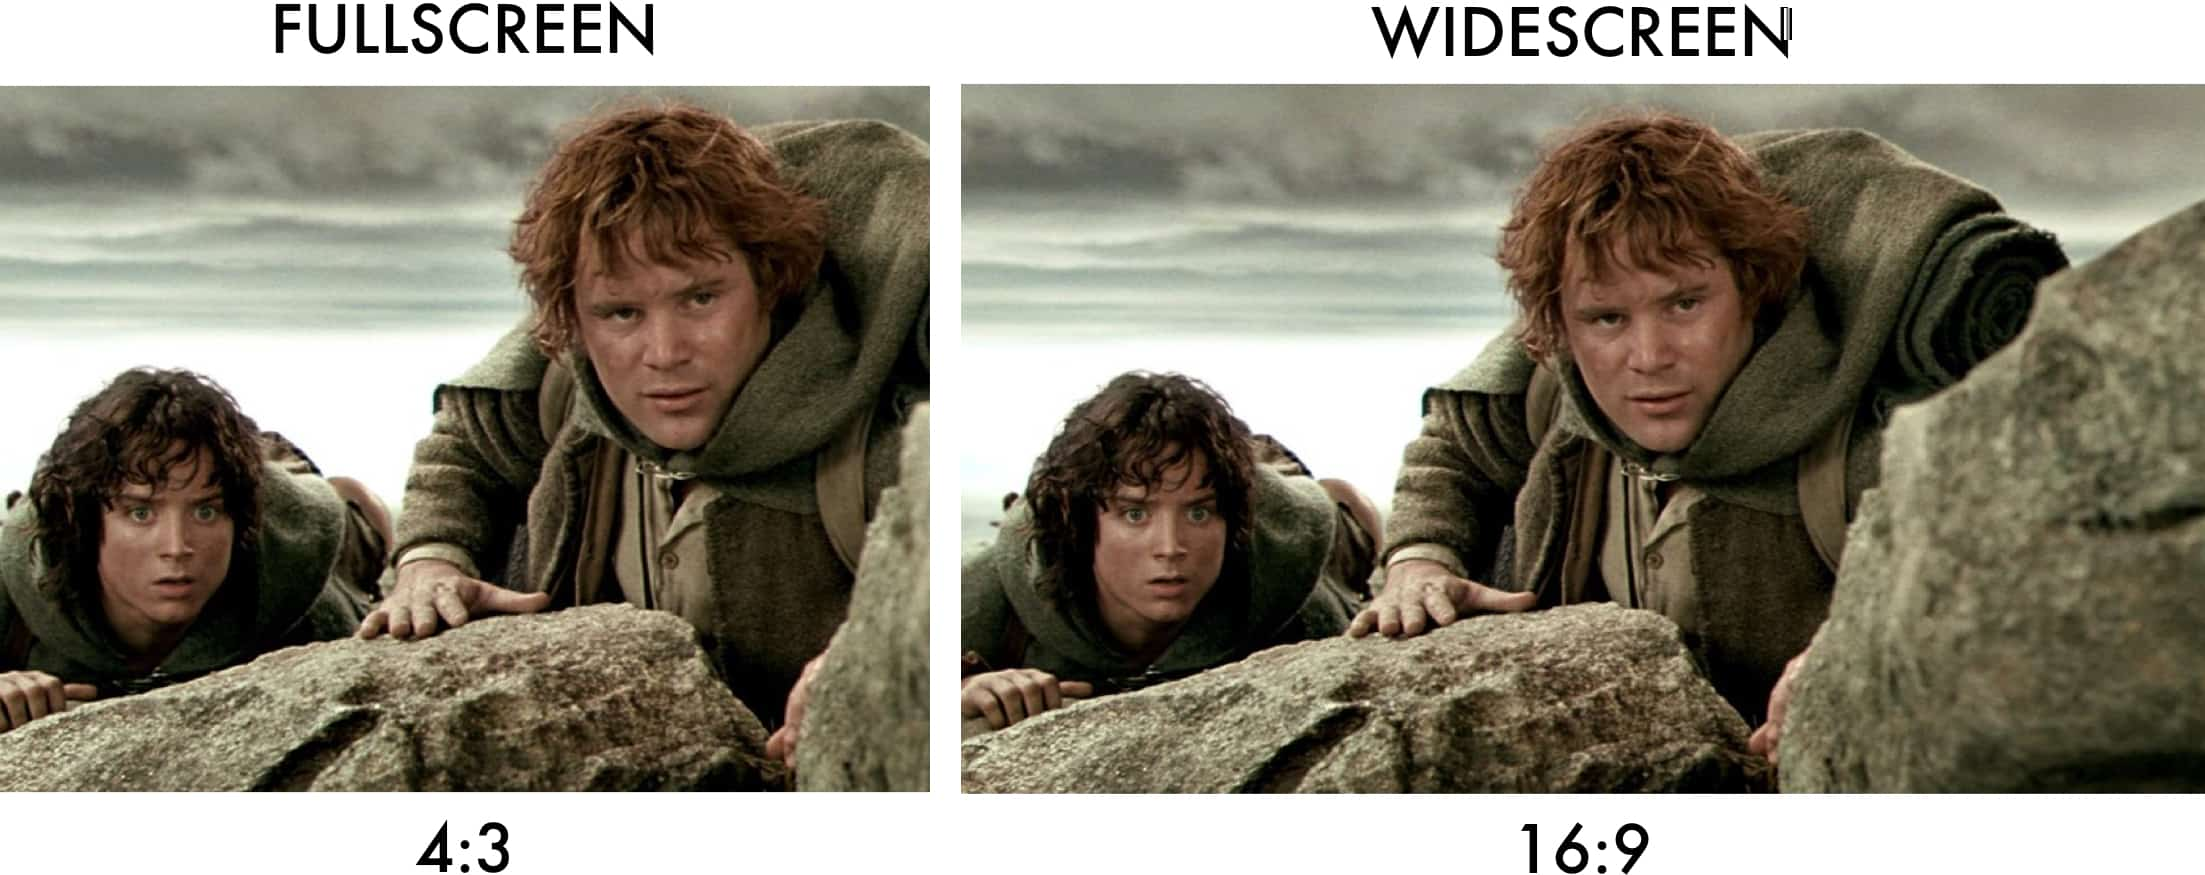 Define Widescreen Aspect Ratio Fullscreen Aspect Ratio - LOTR